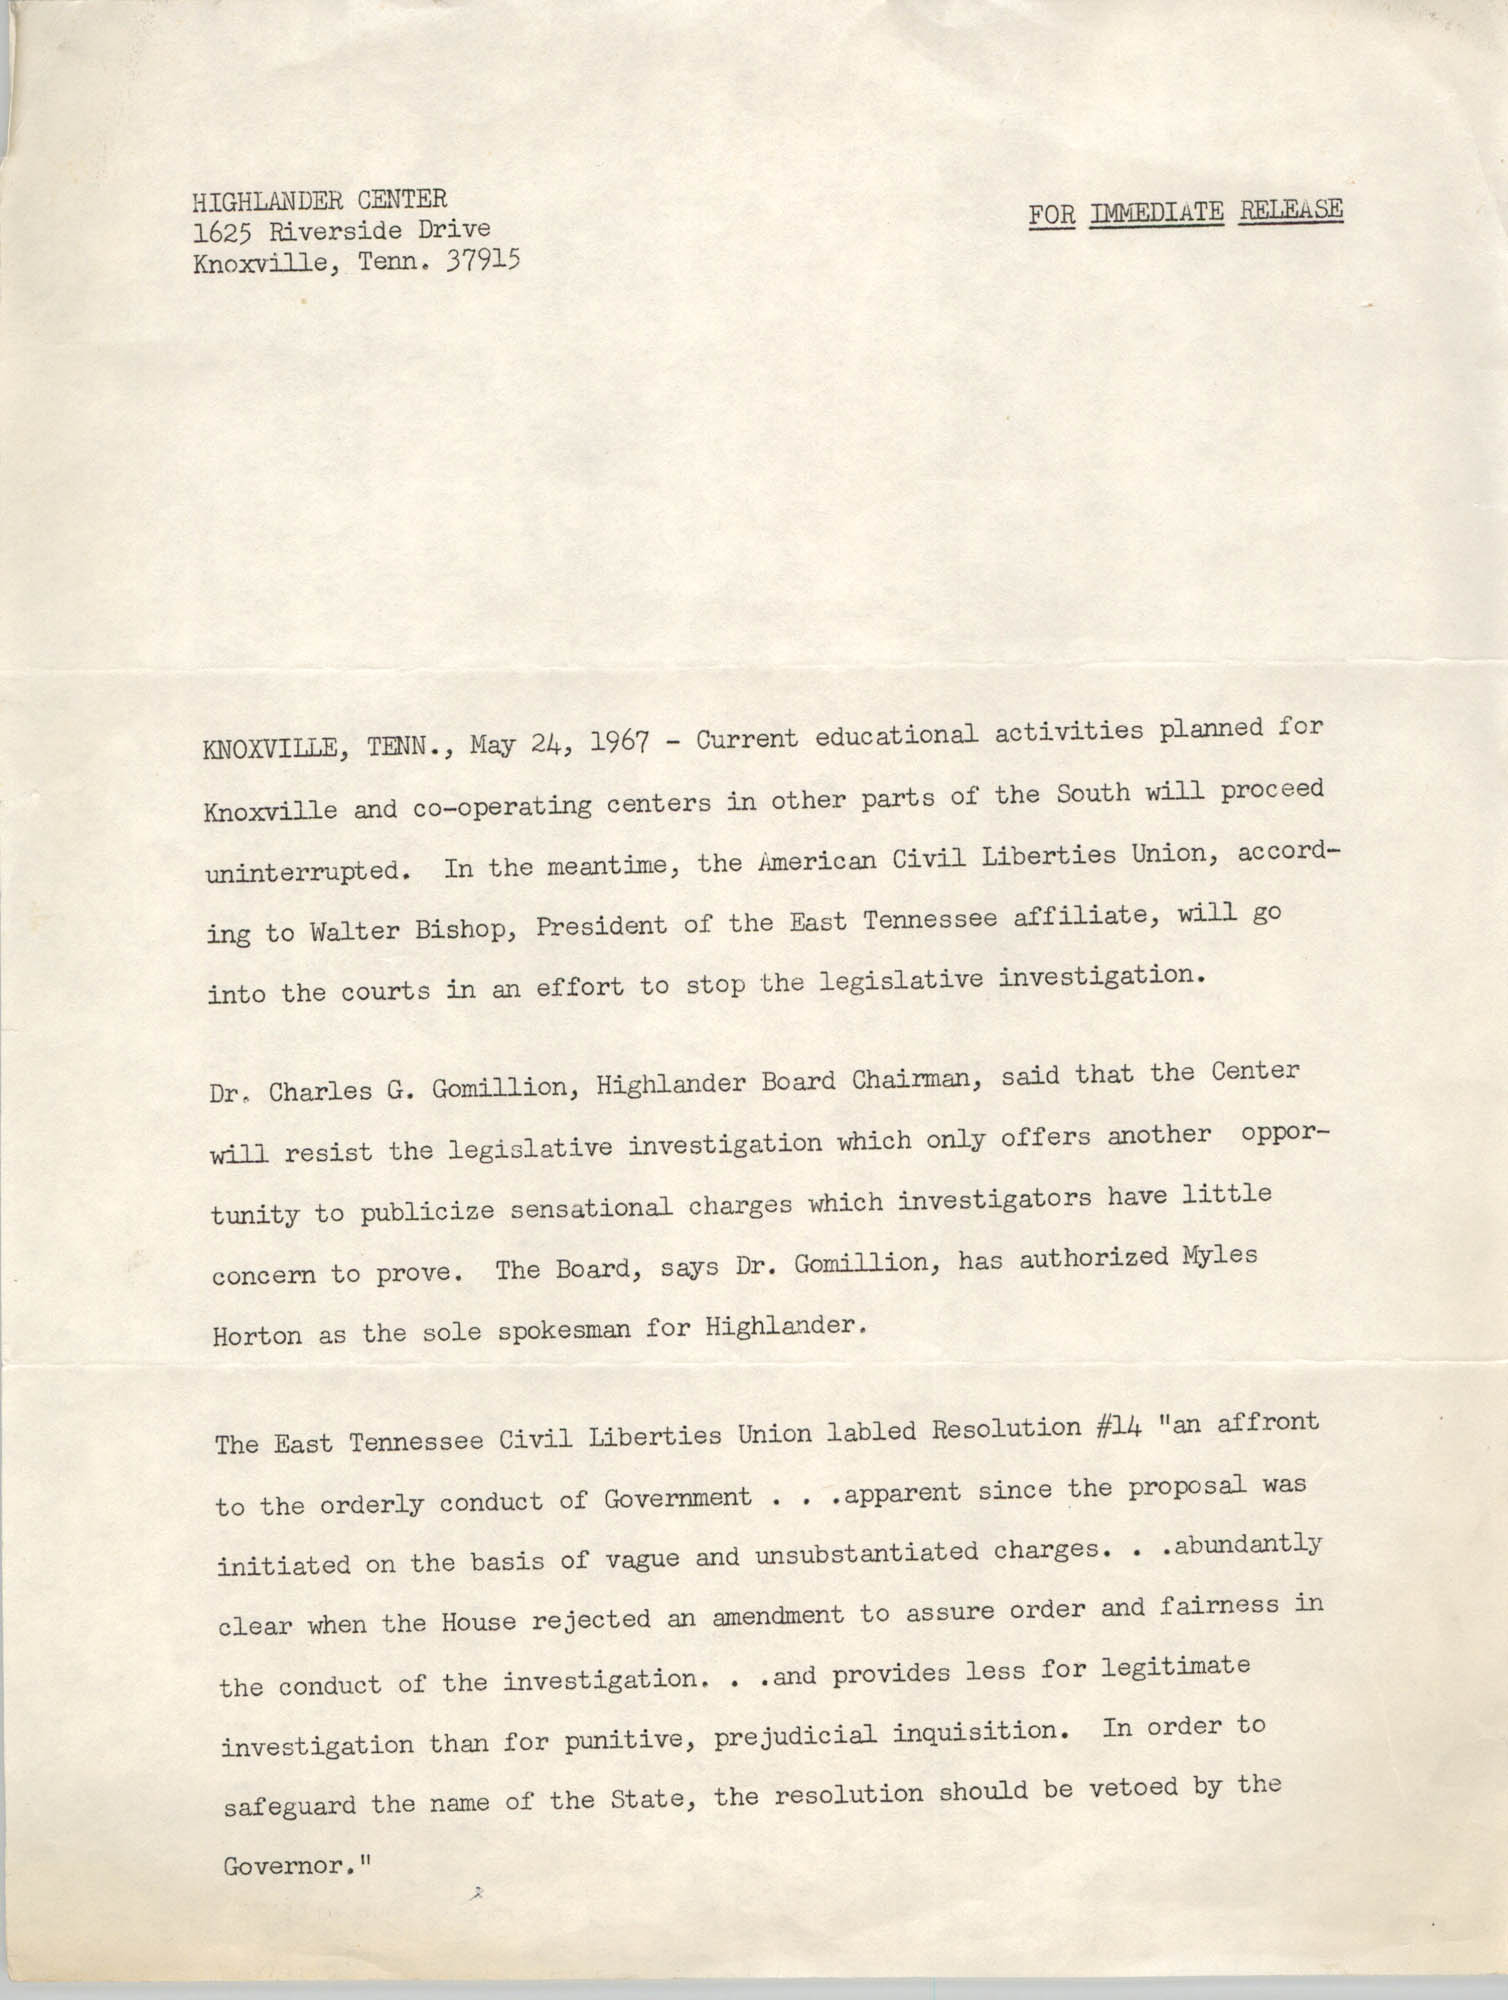 Press Release from Highlander Center, May 24, 1967